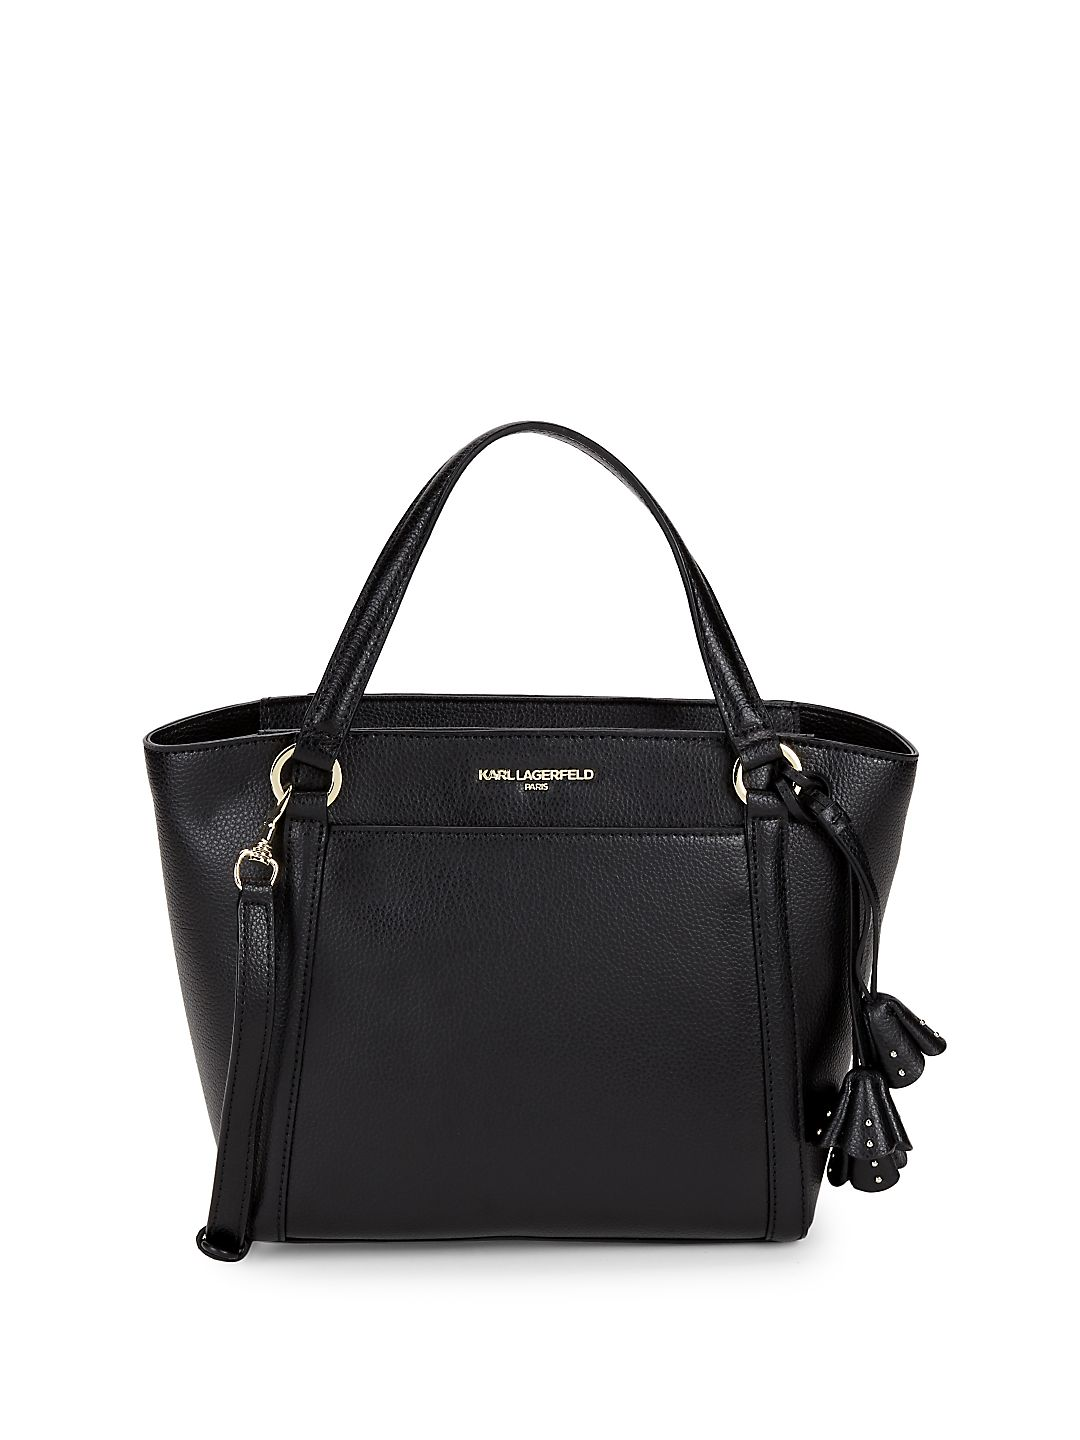 Iris Leather Satchel